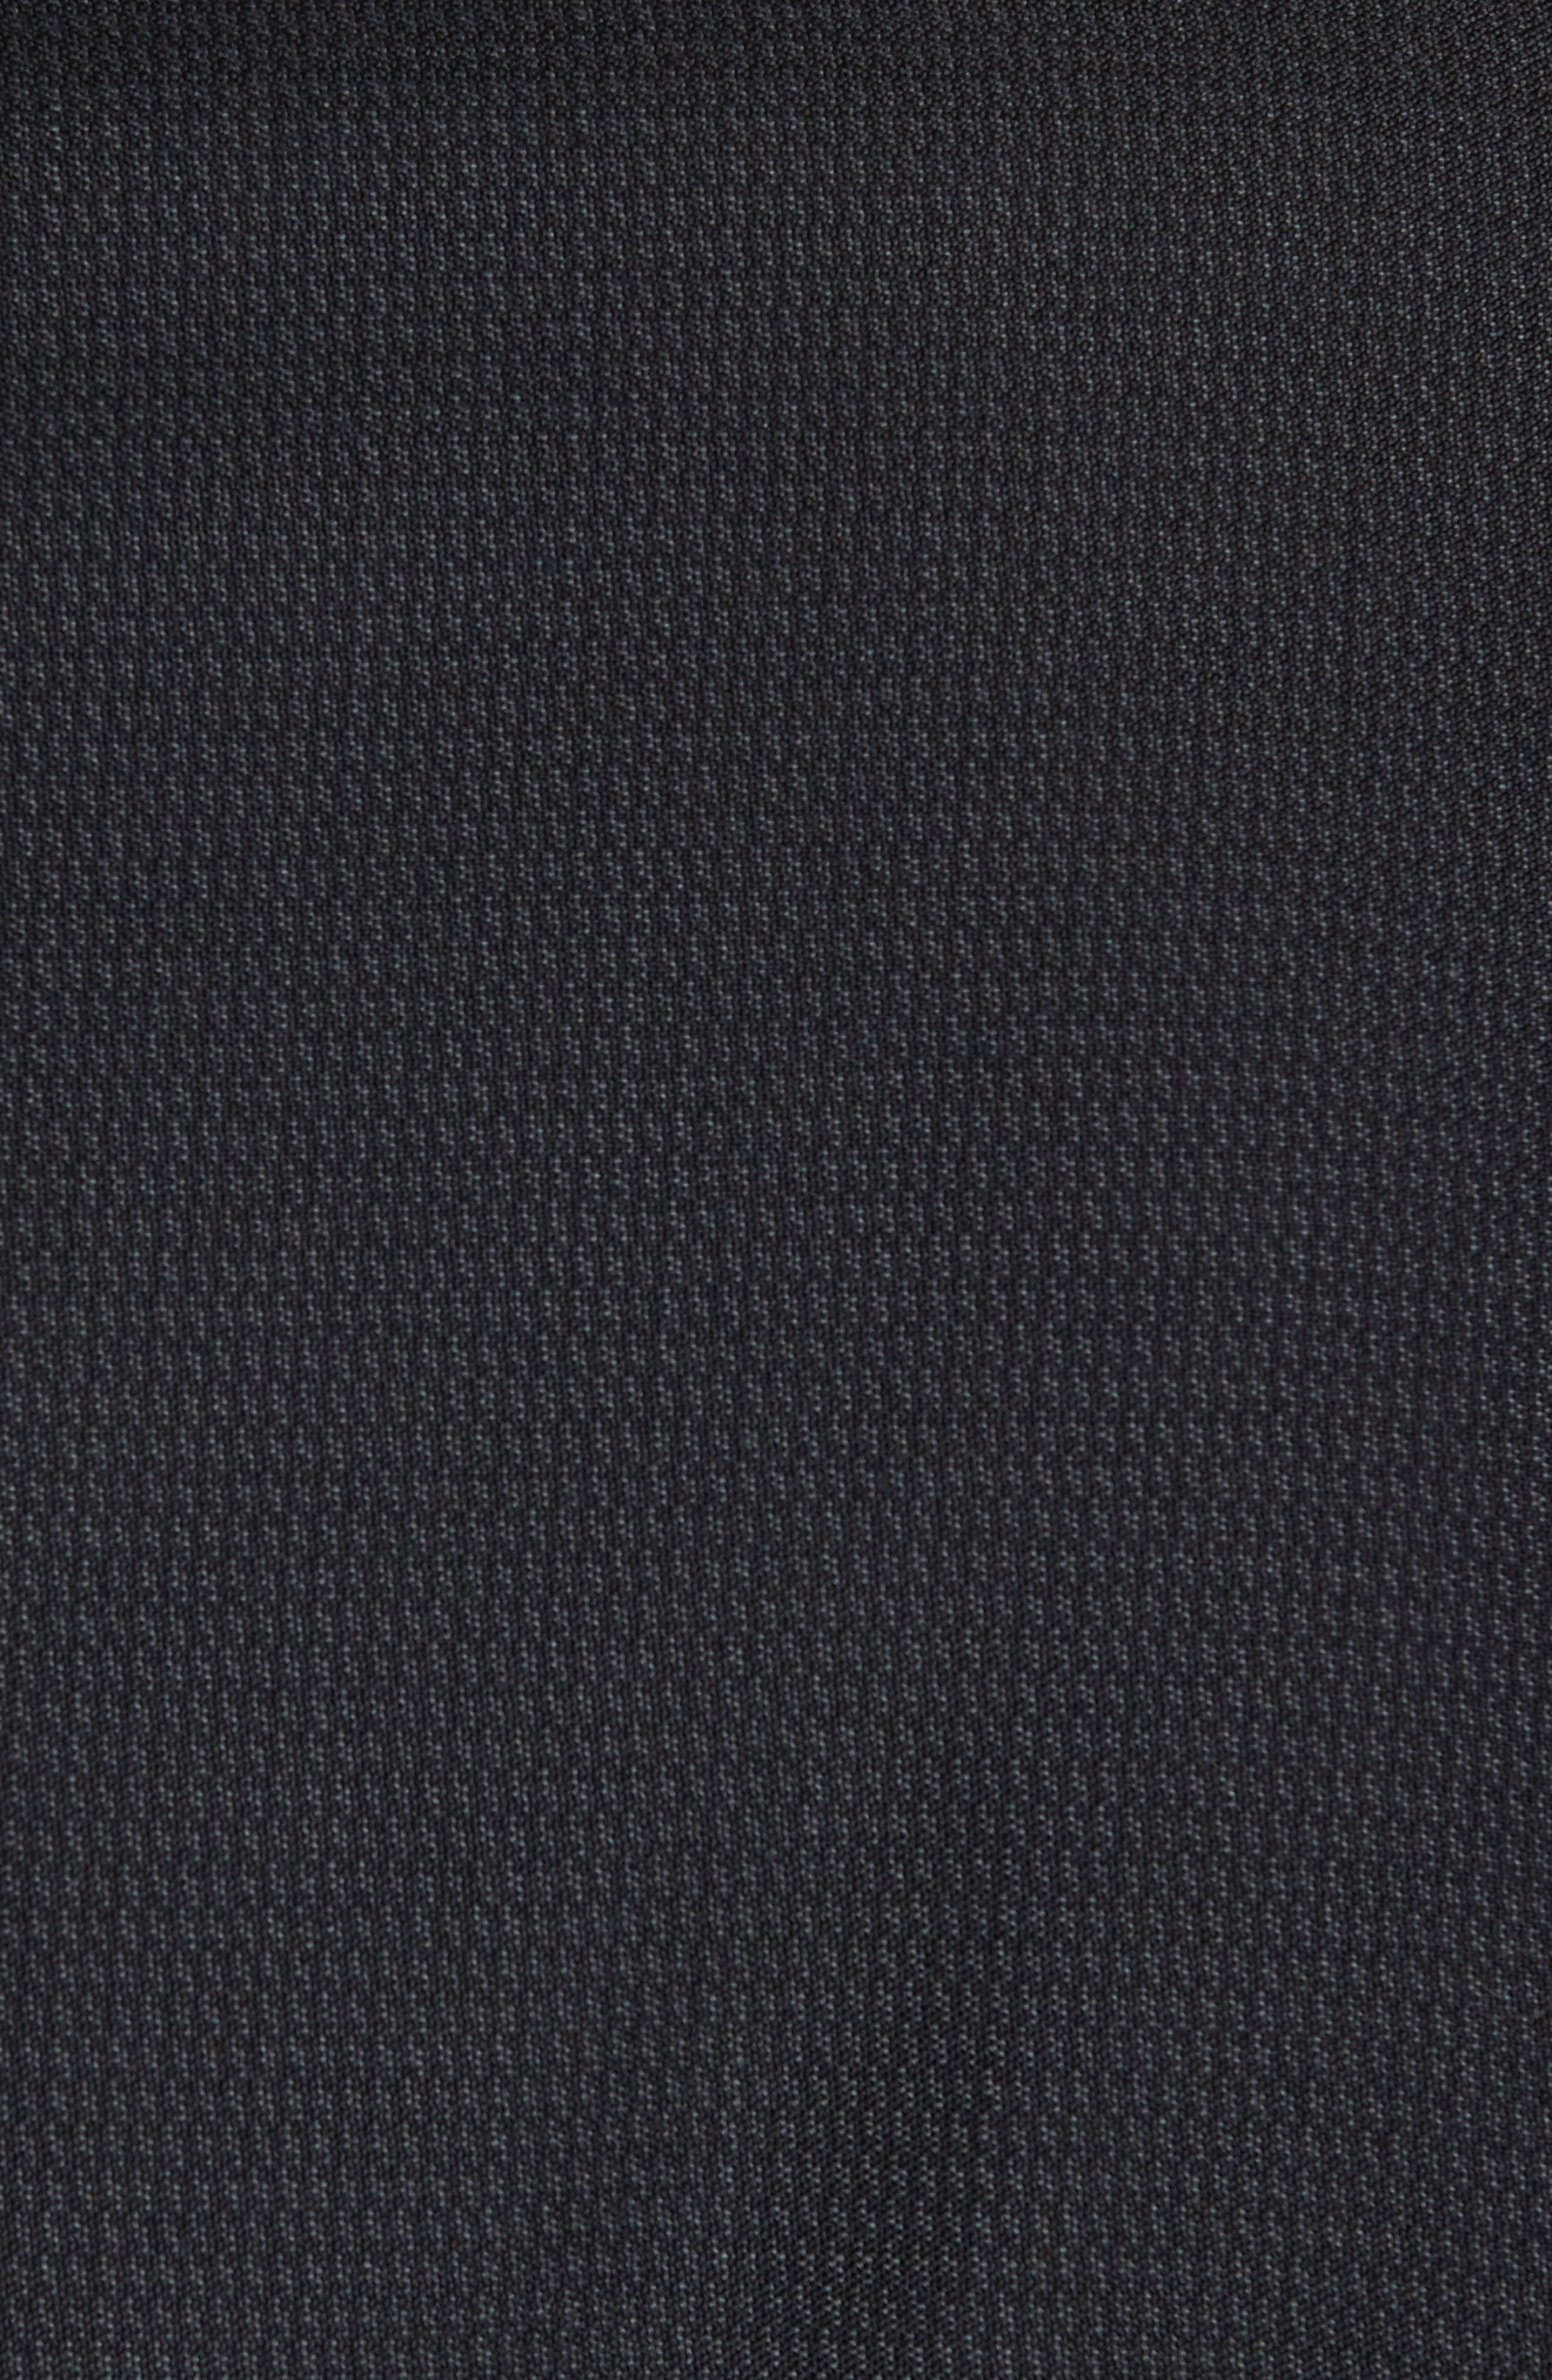 Jay Trim Fit Solid Wool Suit,                             Alternate thumbnail 7, color,                             Black Charcoal